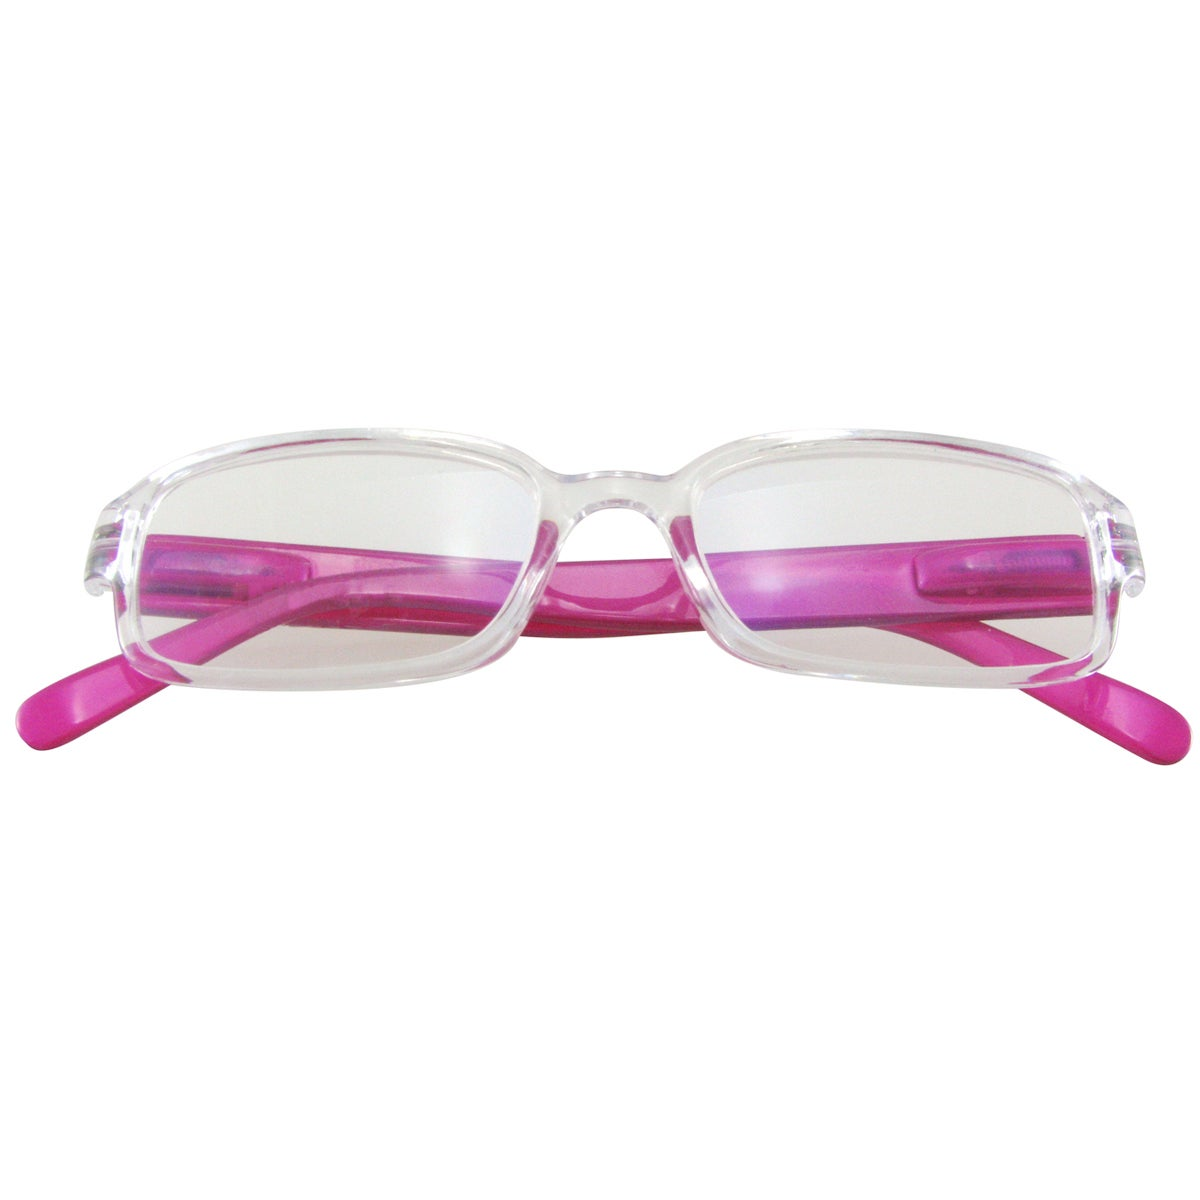 E-specs by Evolutioneyes Pink Computer Glasses